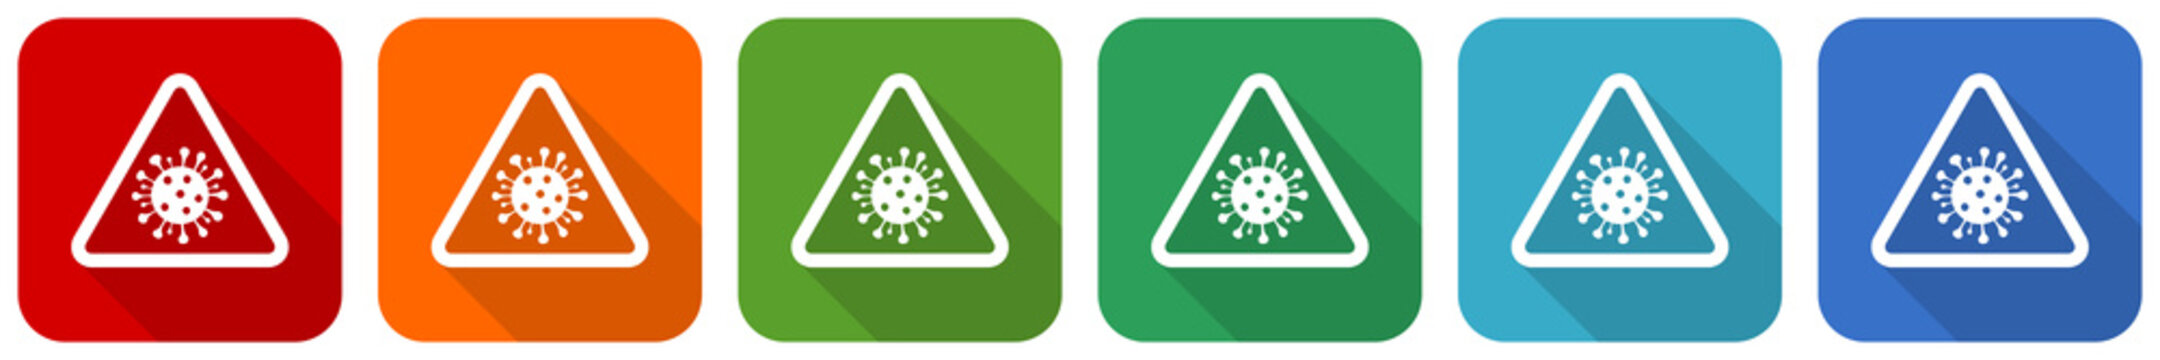 Coronavirus triangle warning sign, covid-19 caution icon set, flat design vector illustration in 6 colors options for webdesign and mobile applications